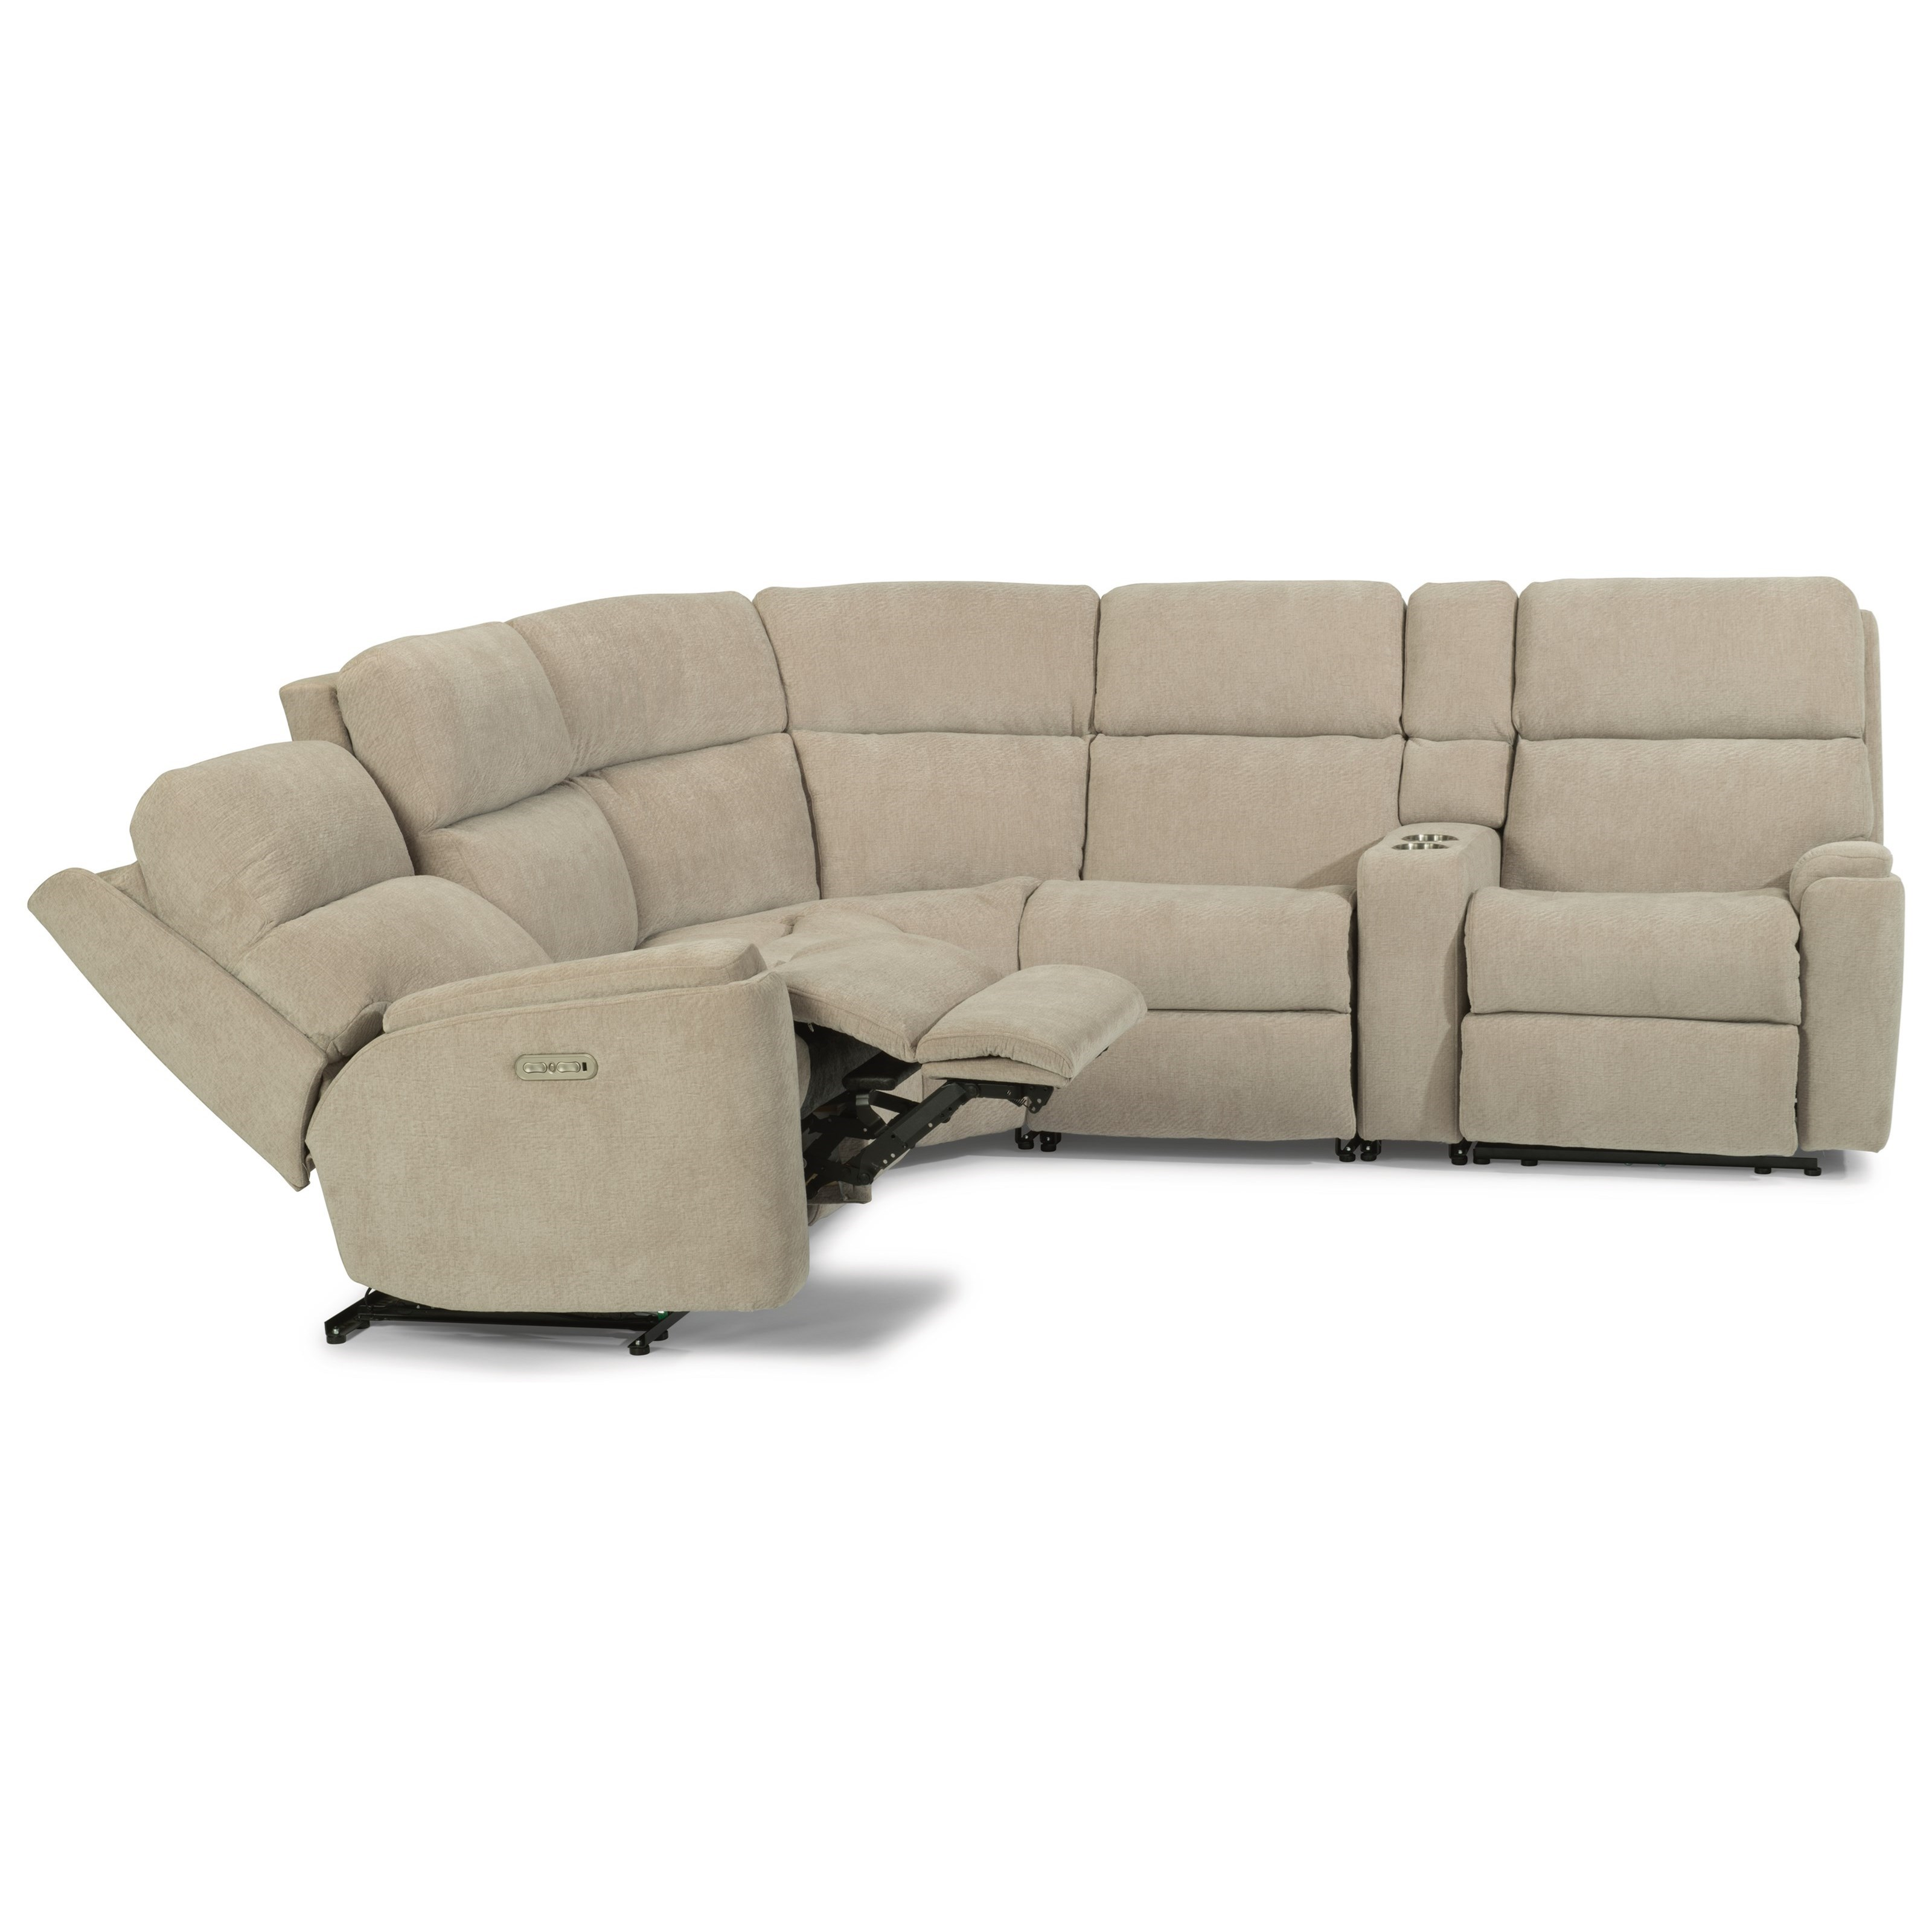 Rio 6 Piece Power Reclining Sectional by Flexsteel at Walker's Furniture